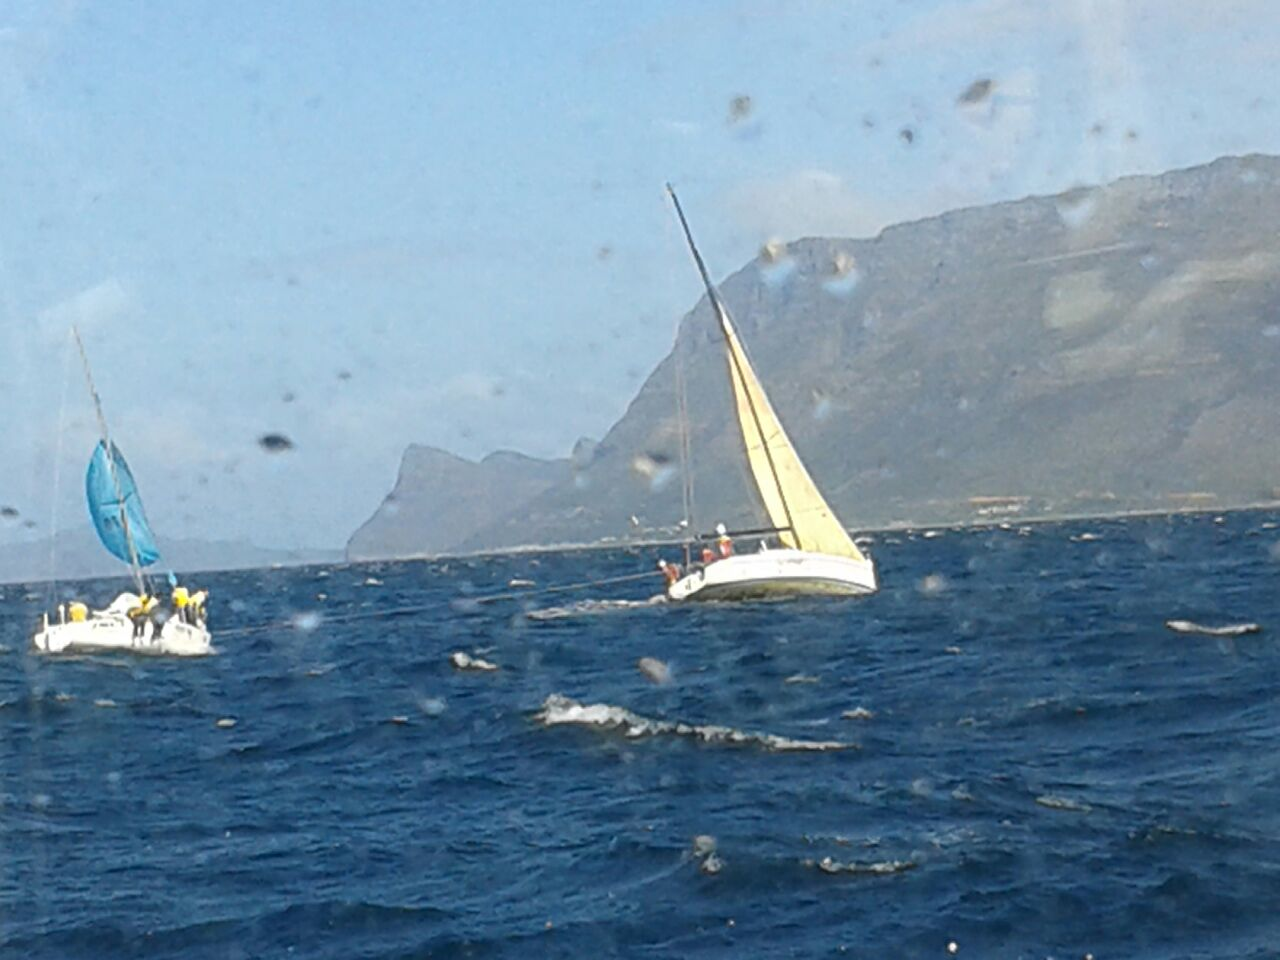 SA Navy yacht AMOYO, that was in the area at the time following the yacht regatta, took the JML I under tow.